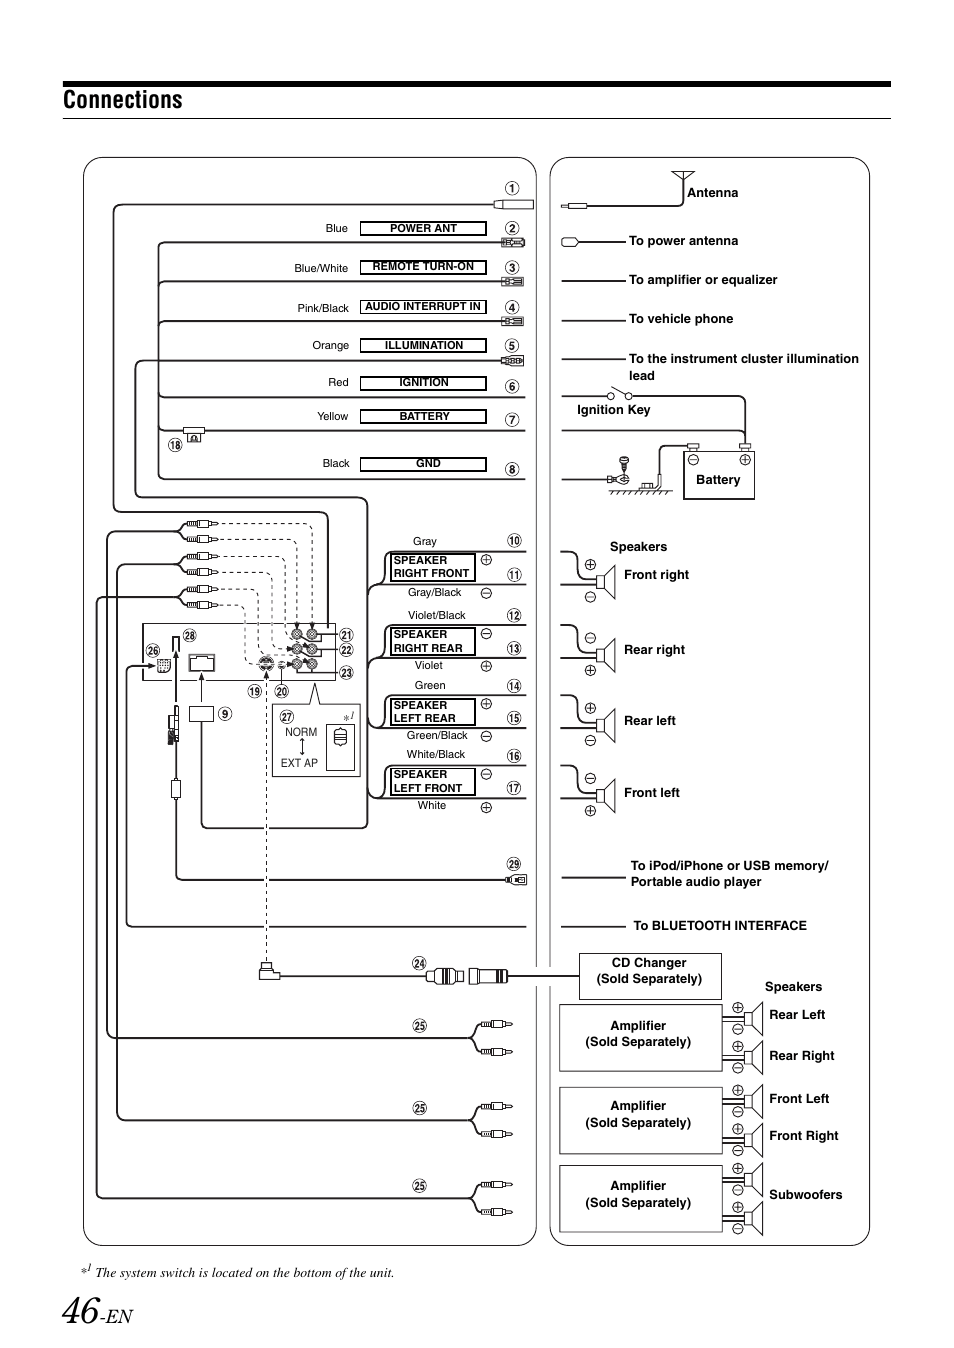 ALPINE IDA X305 MANUAL PDF